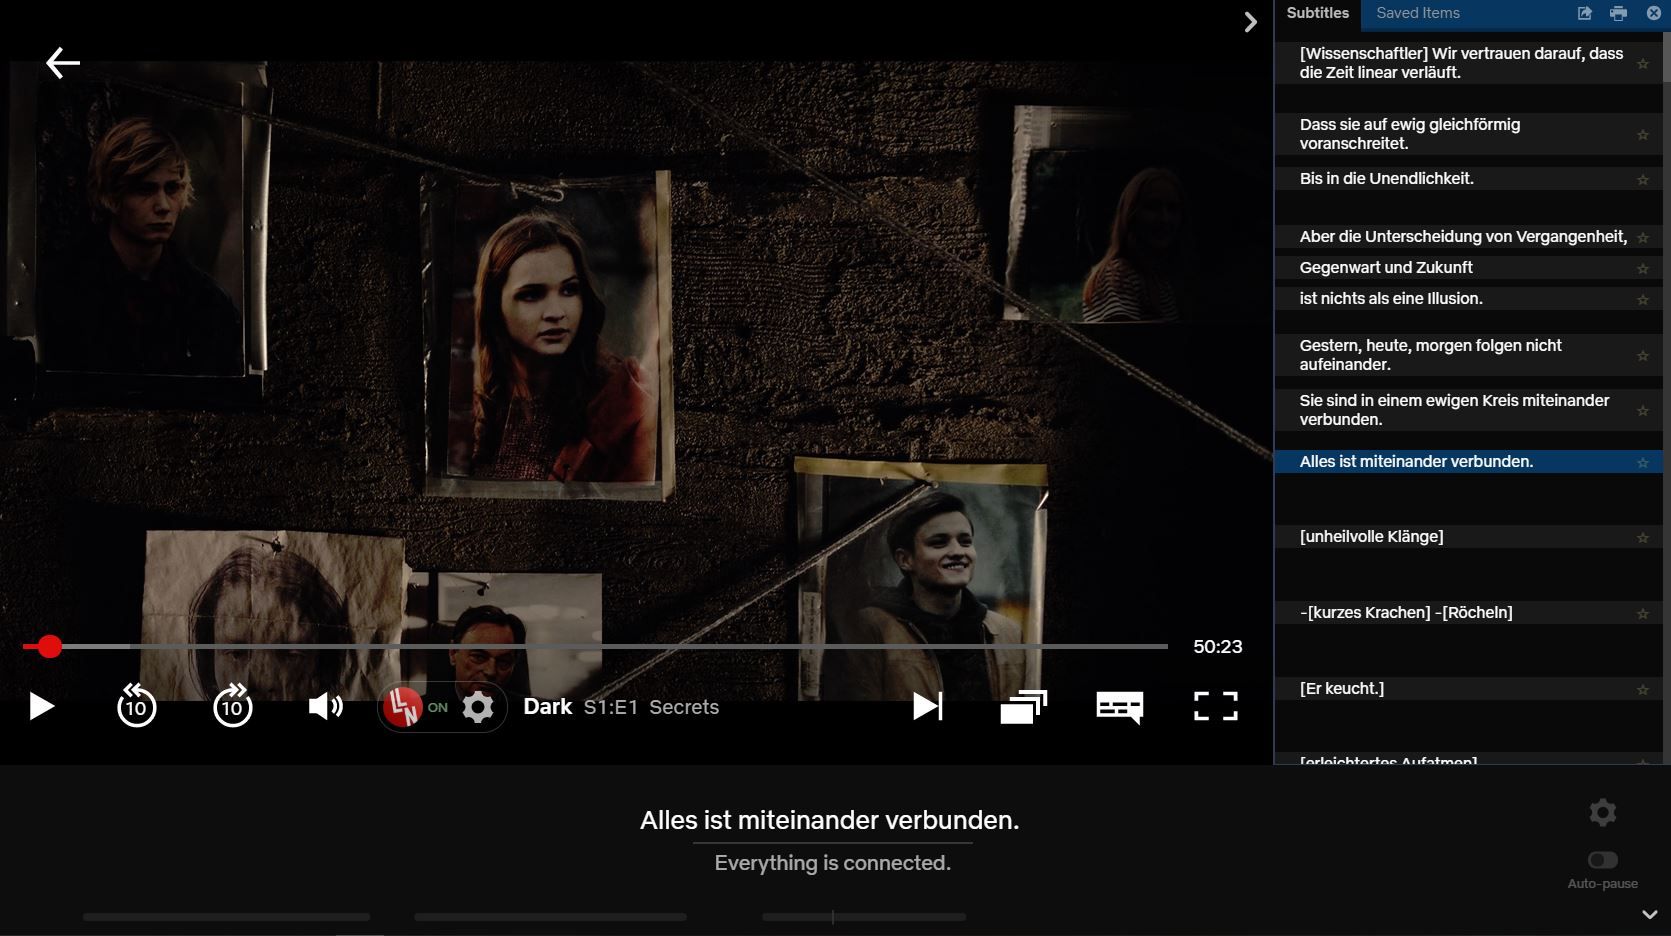 using the Language learning with netflix chrome extension - Dark (original language: German)